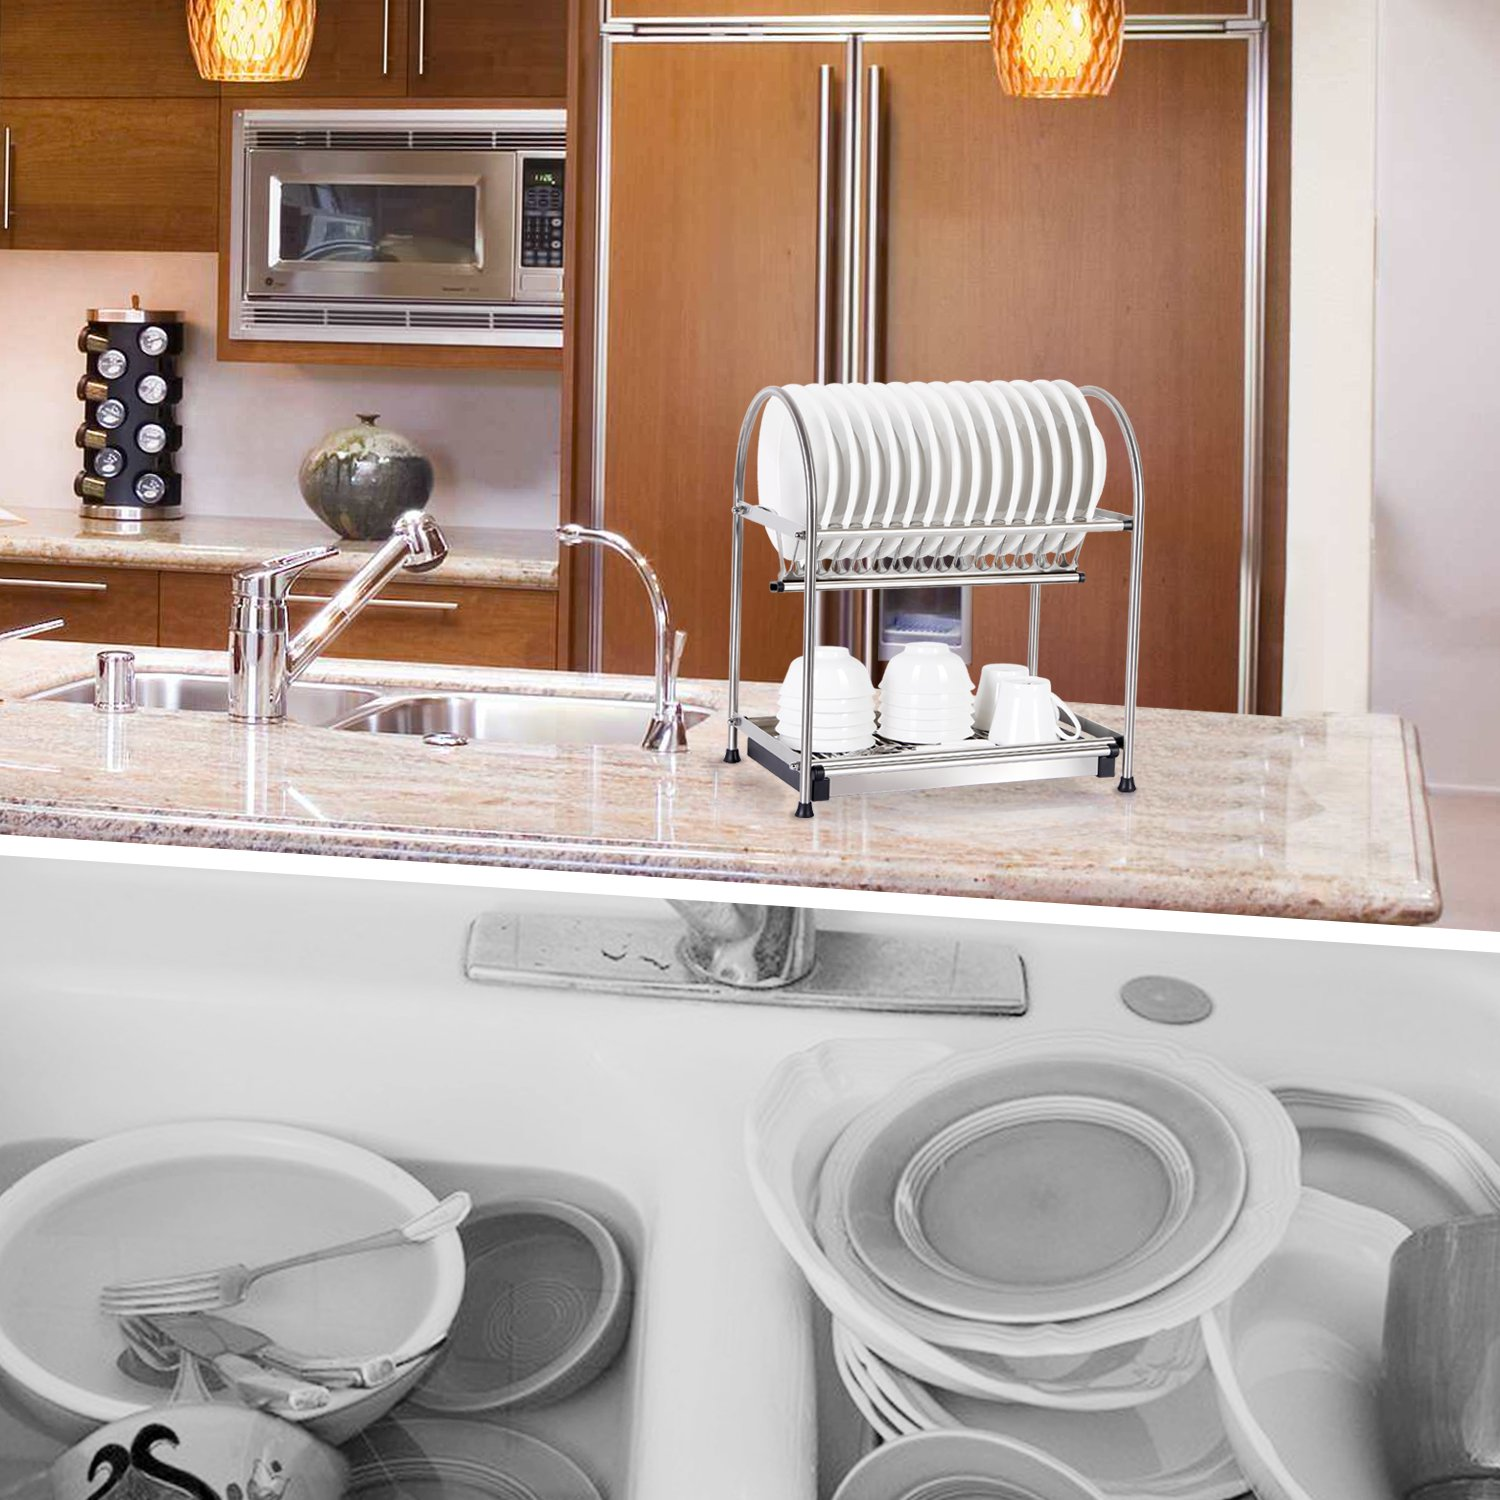 Kitchen Drying Rack For Sink Lifewit Over The Sink 2 Tier Dish Drainer Drying Rack Holder